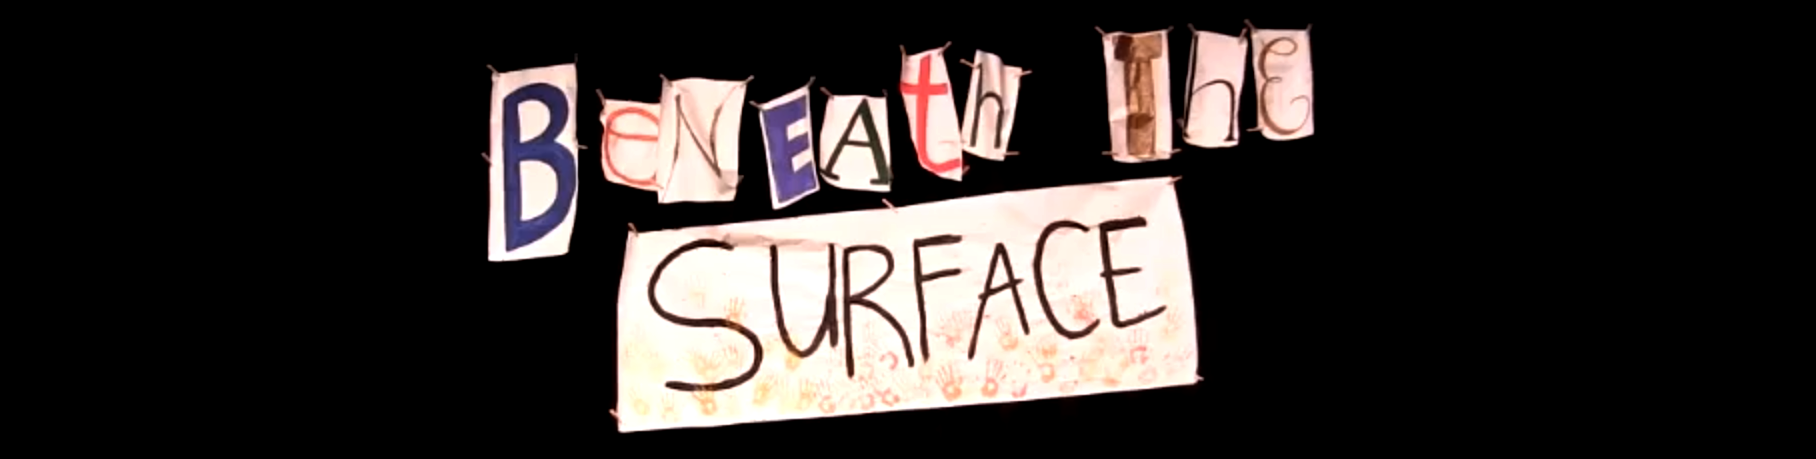 Beneath the Surface banner with letters cut out on a black curtain